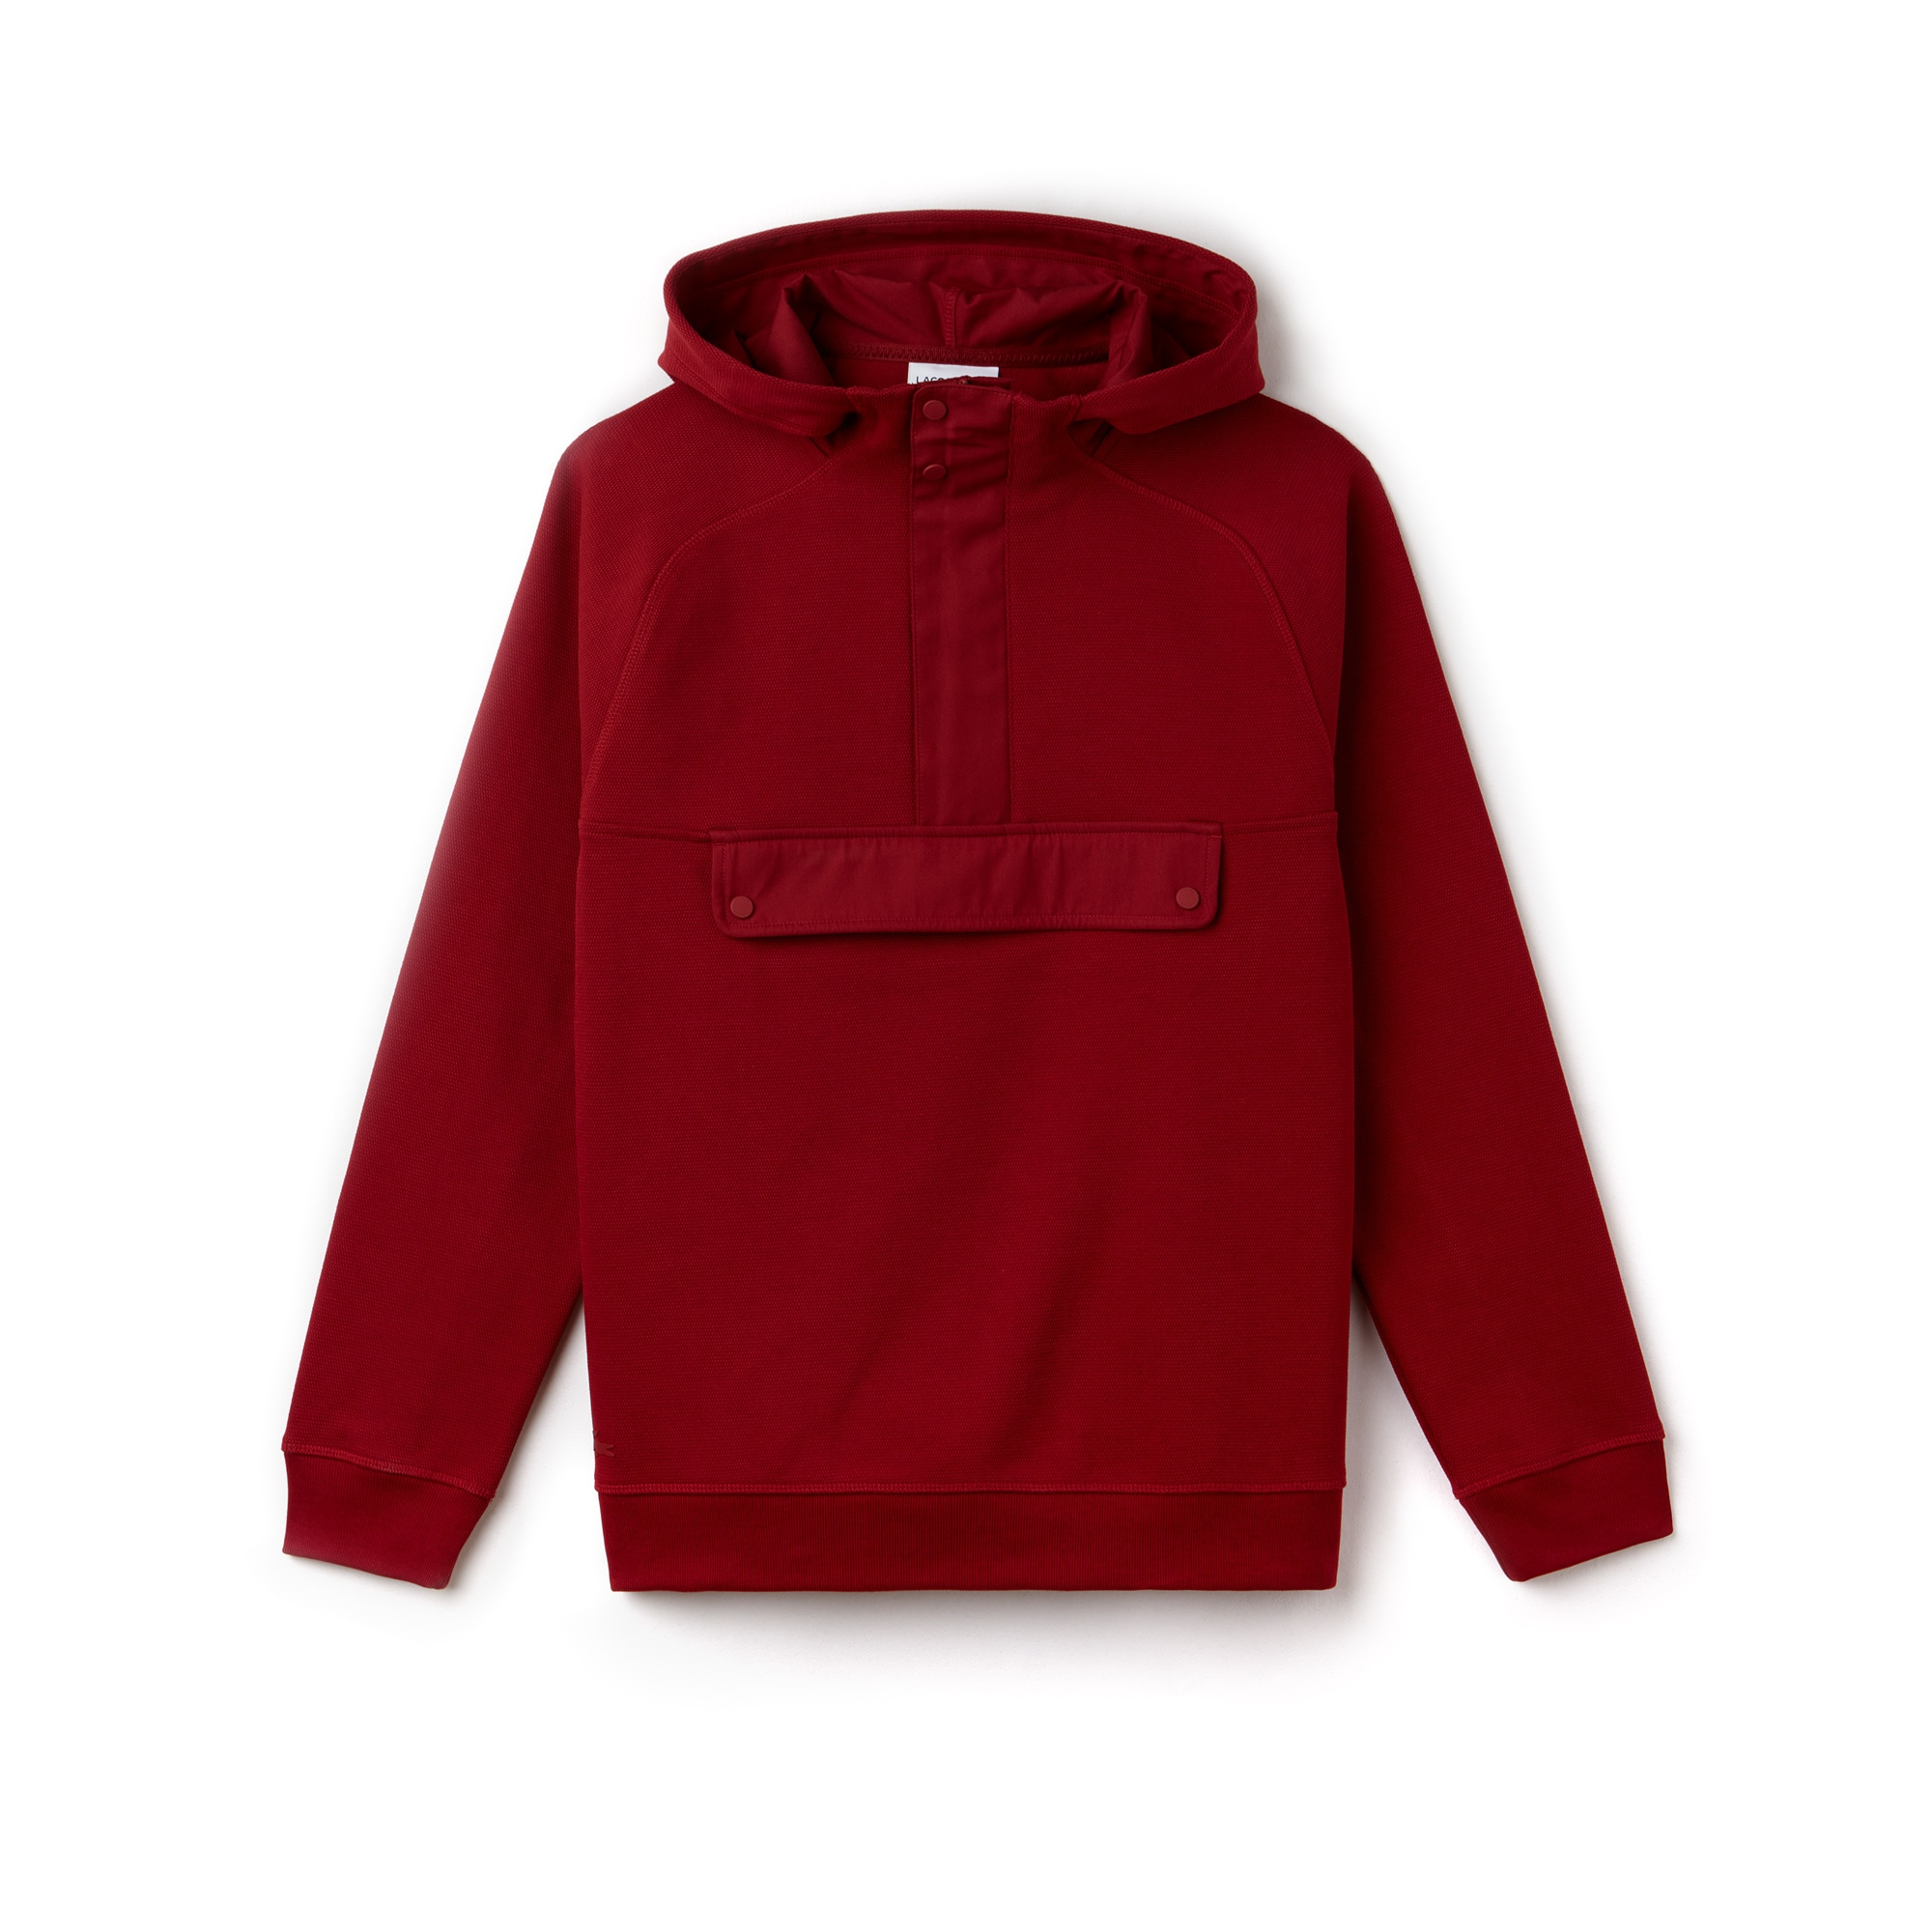 Men's Hooded Cotton Jacquard Piqué Sweatshirt